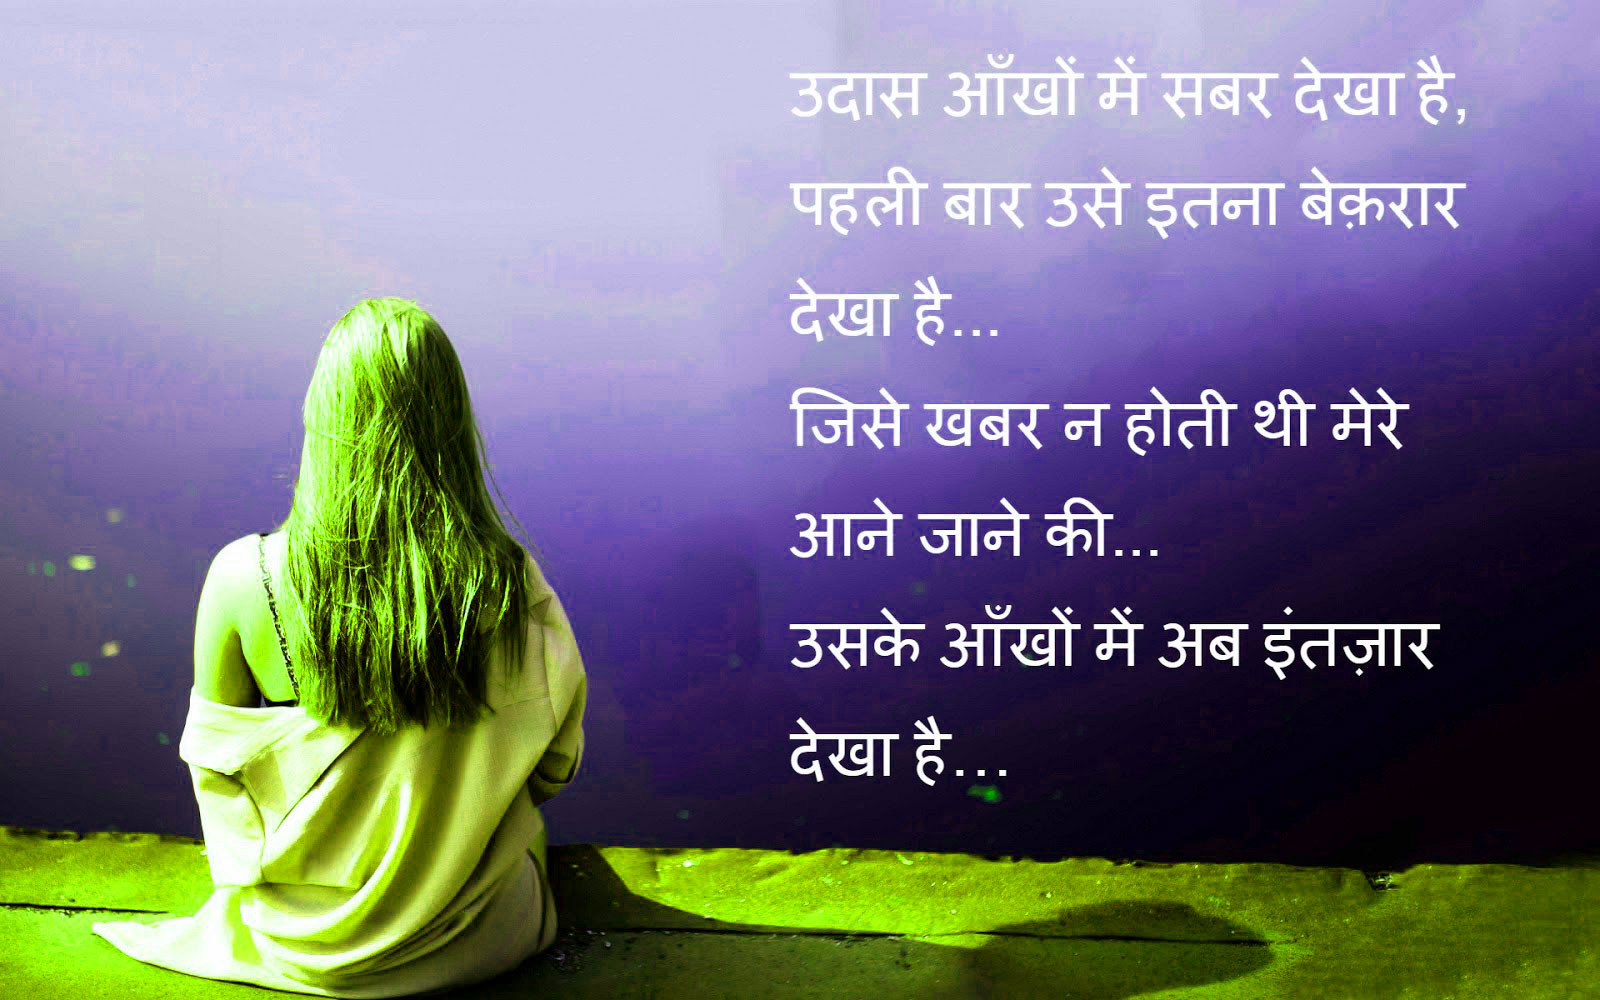 Hindi Love Shayari Quotes Whatsapp Status Whatsapp DP Images Photo Download